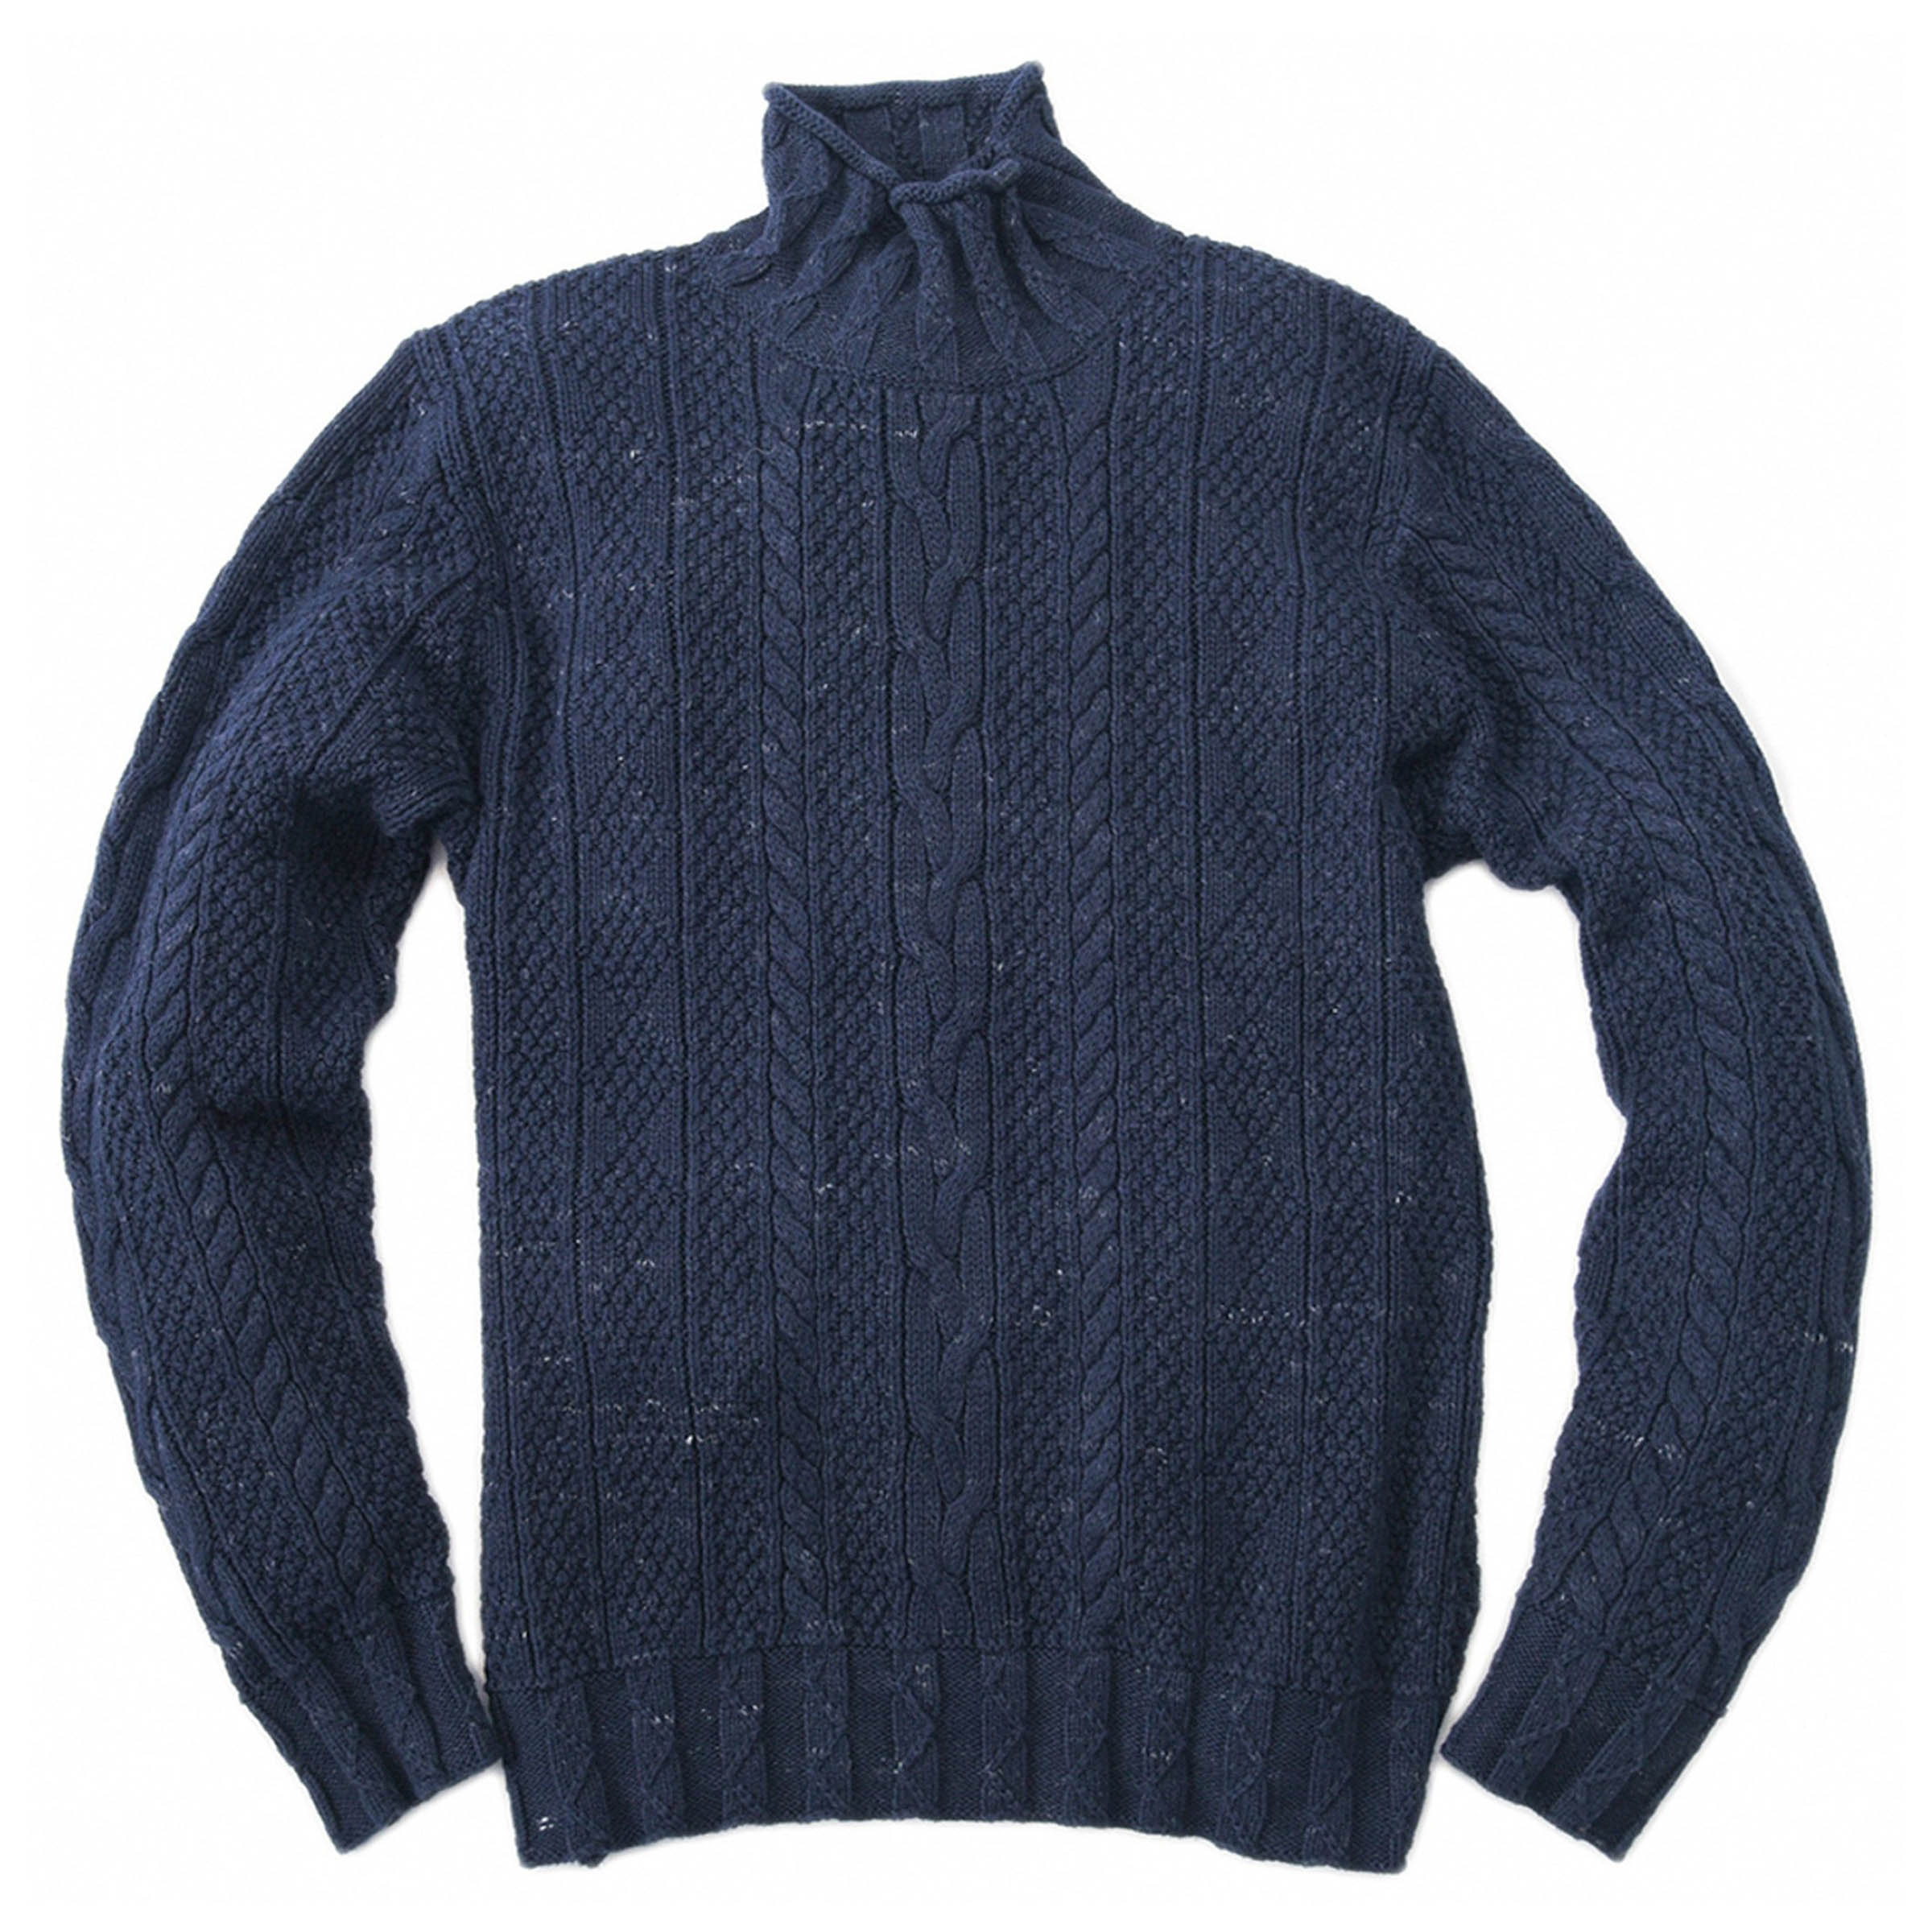 Albert Roll Neck - Navy Heather